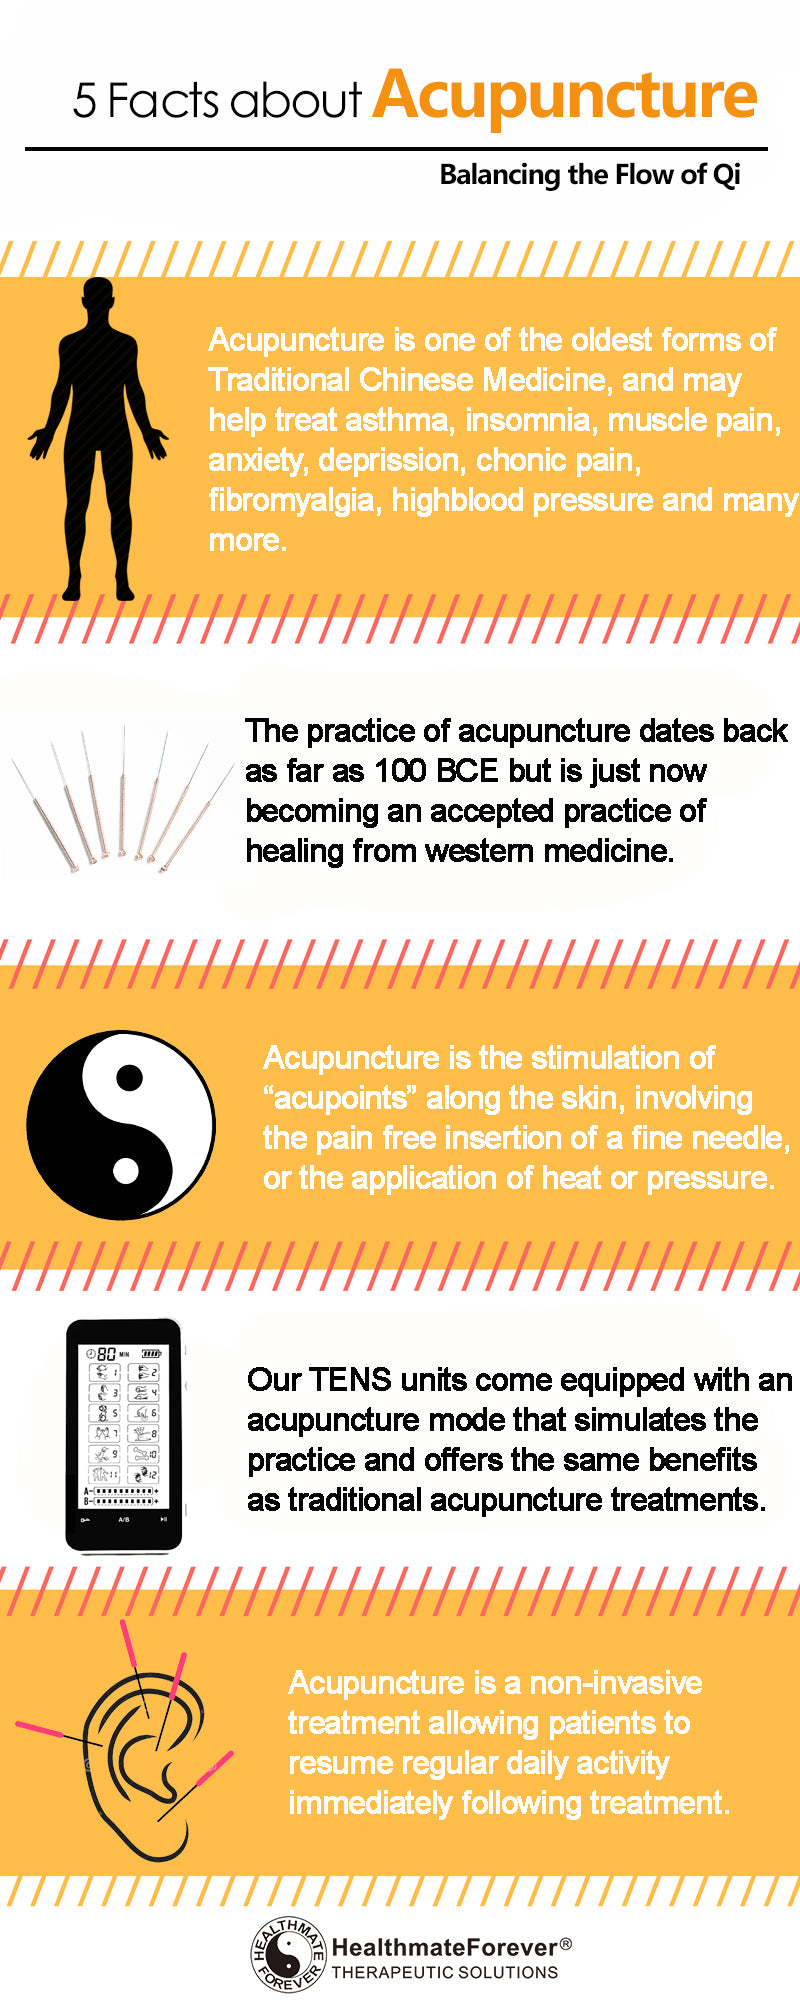 5 Facts about Acupunture